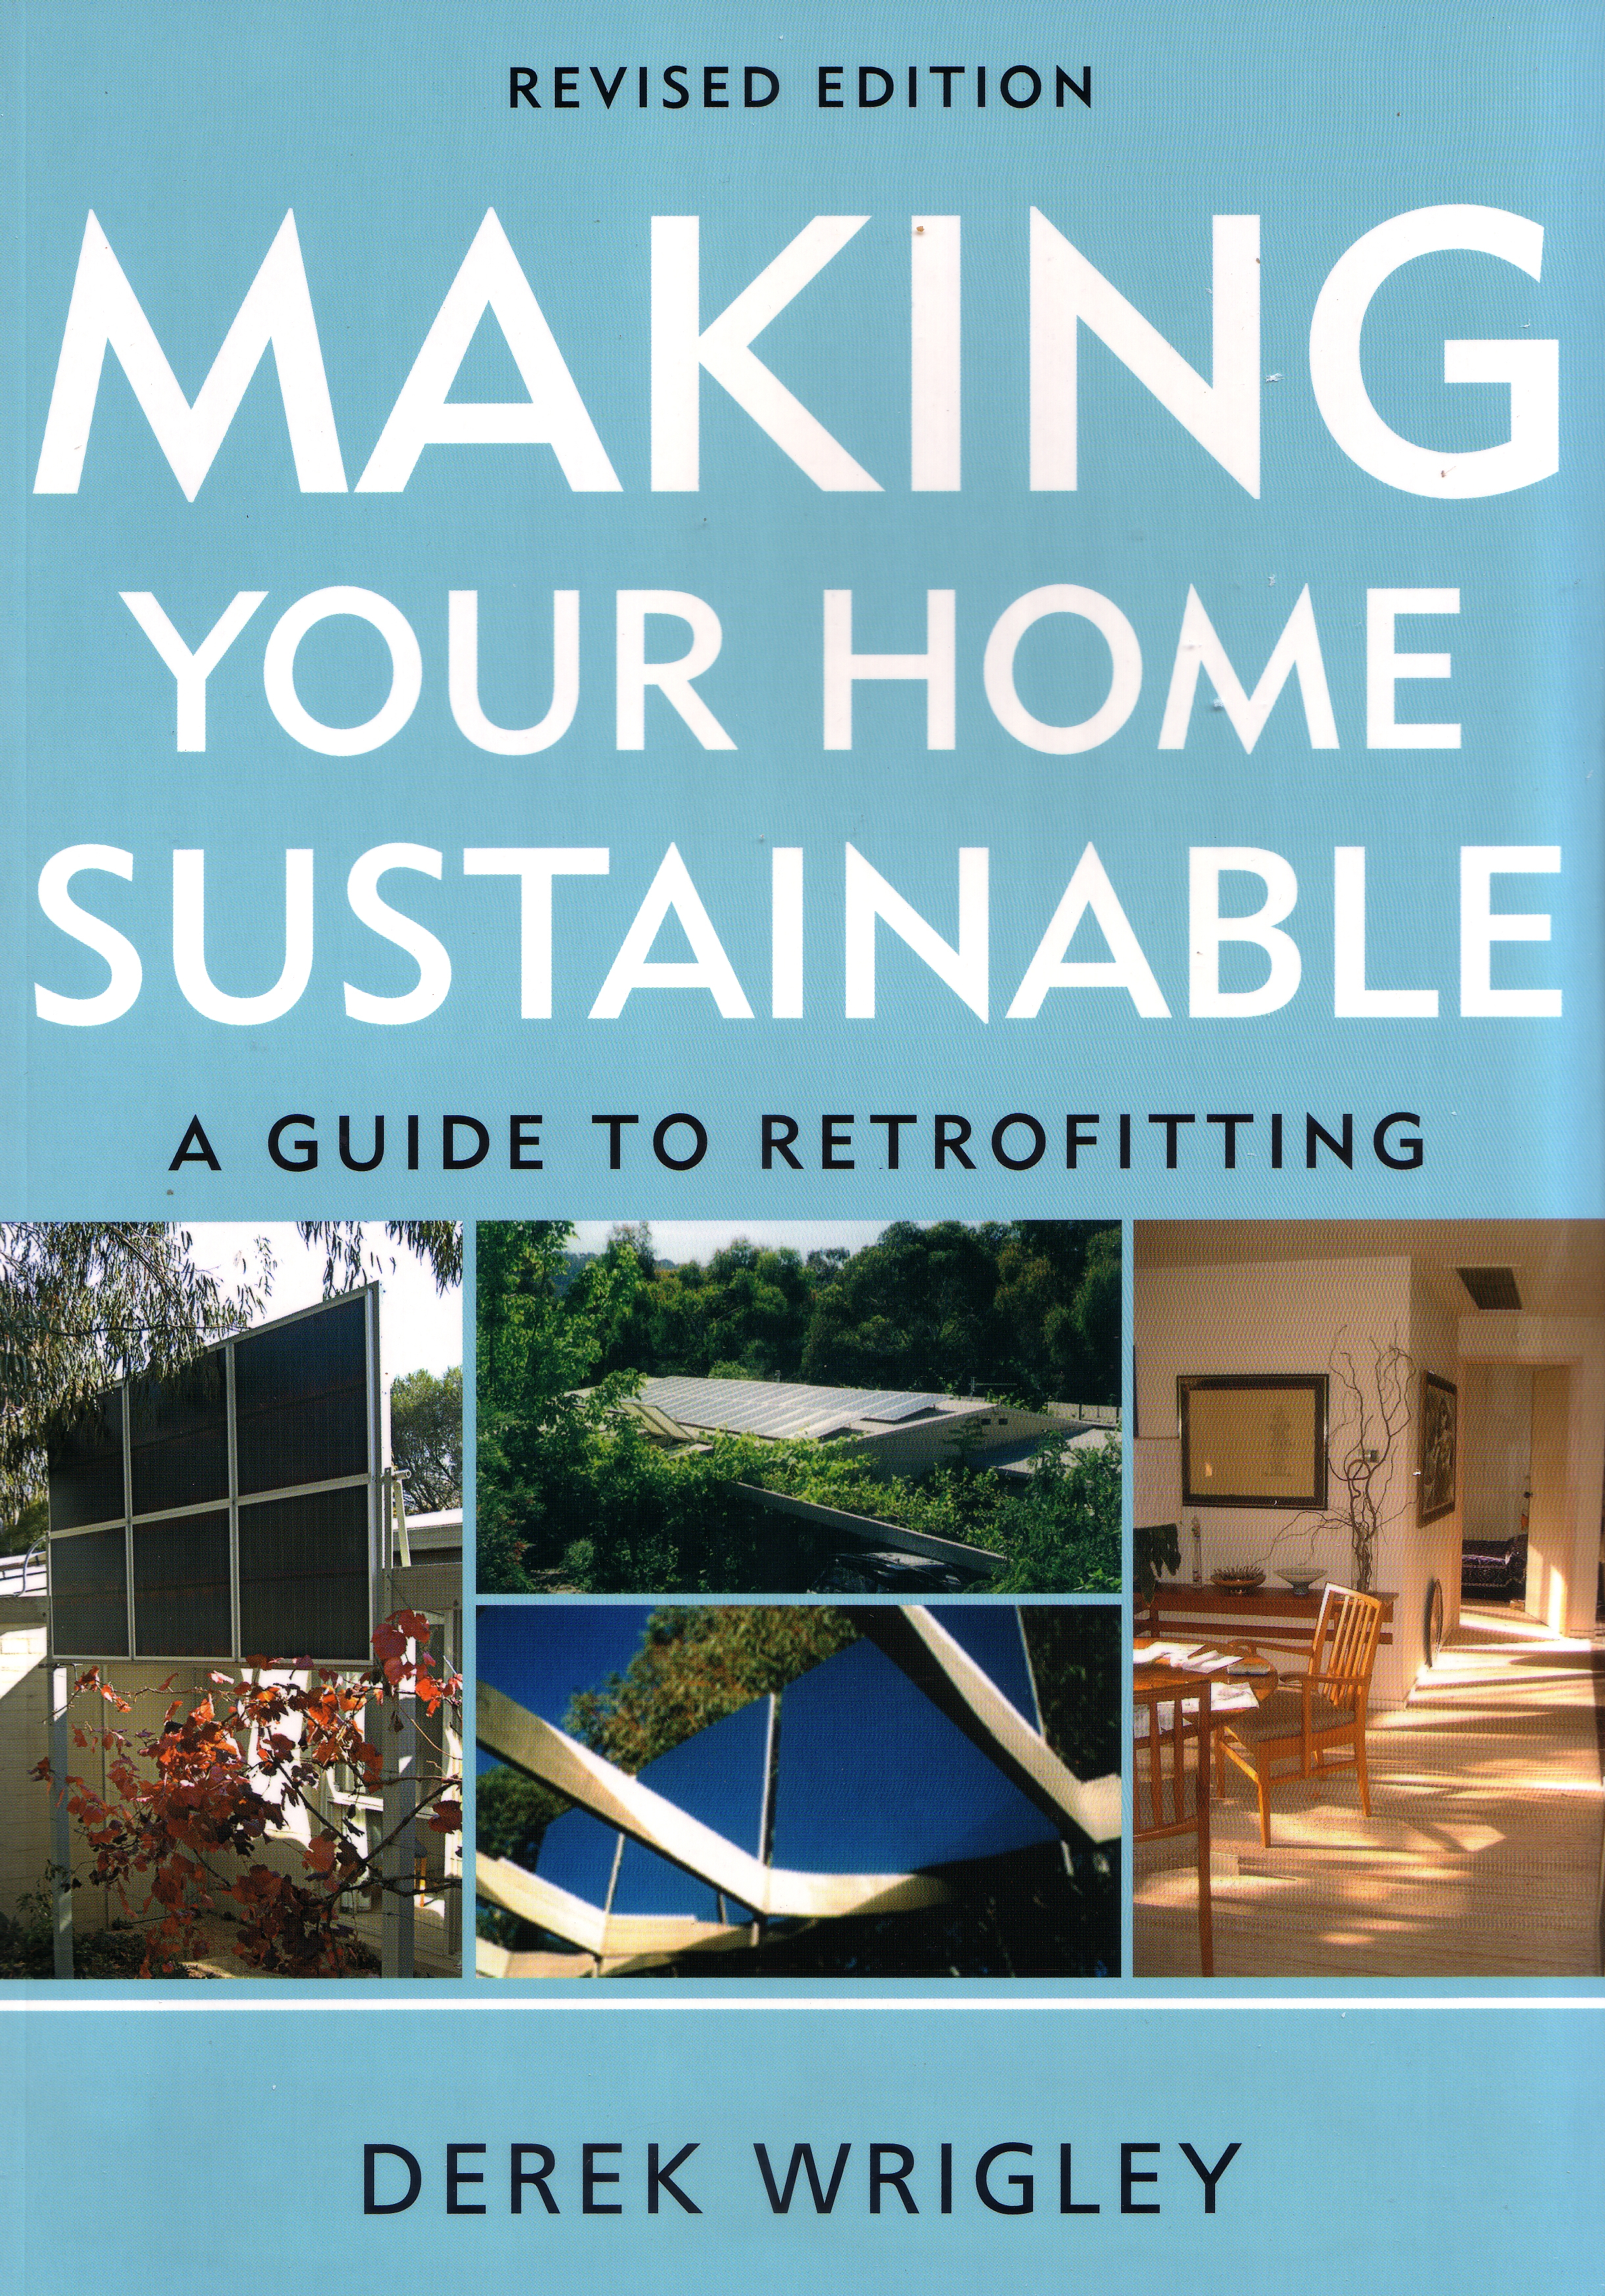 Making Your Home Sustainable: A Guide to Retrofitting, Revised Edition ' Wrigley